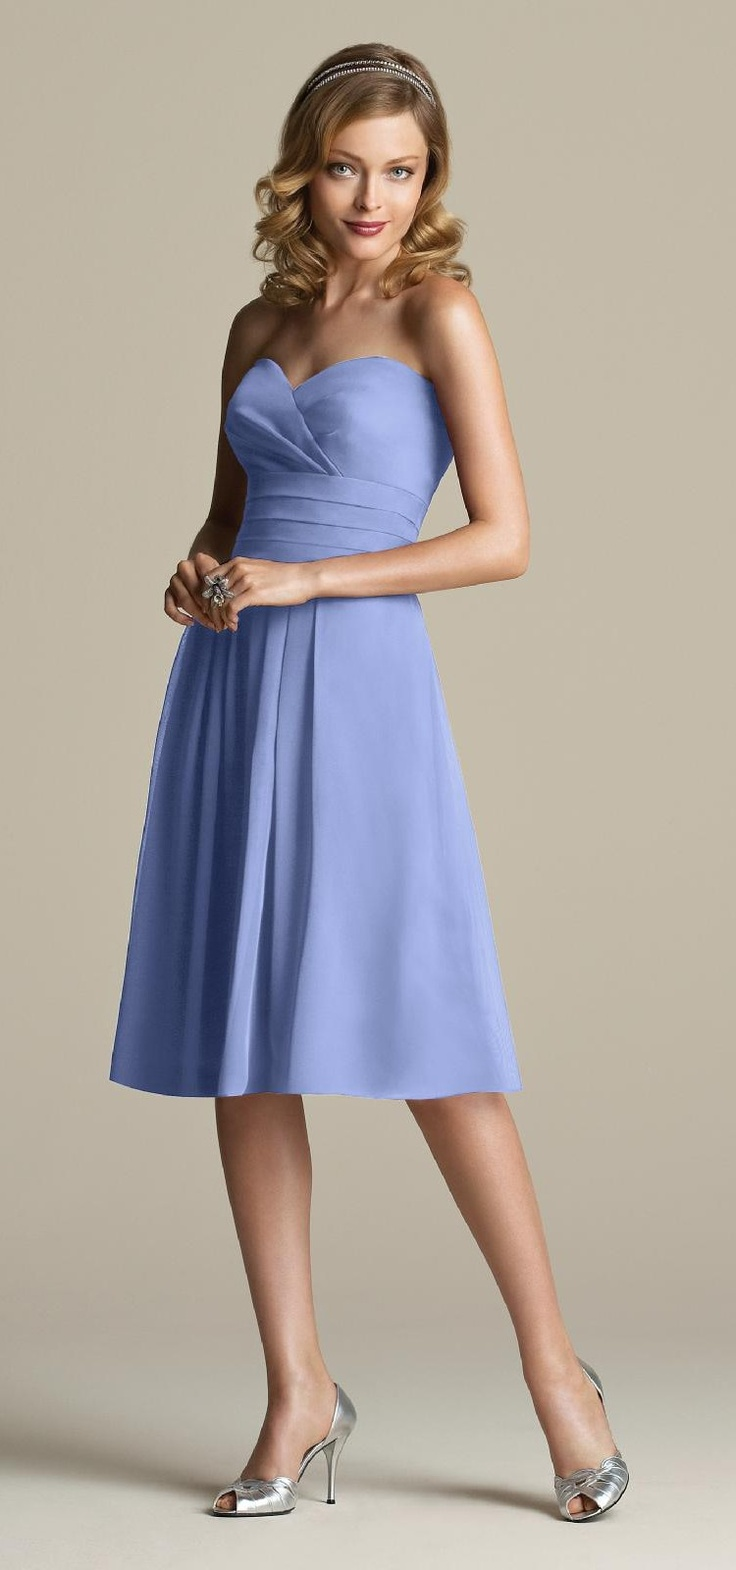 Periwinkle bridesmaid dresses tying the knot pinterest for Periwinkle dress for wedding